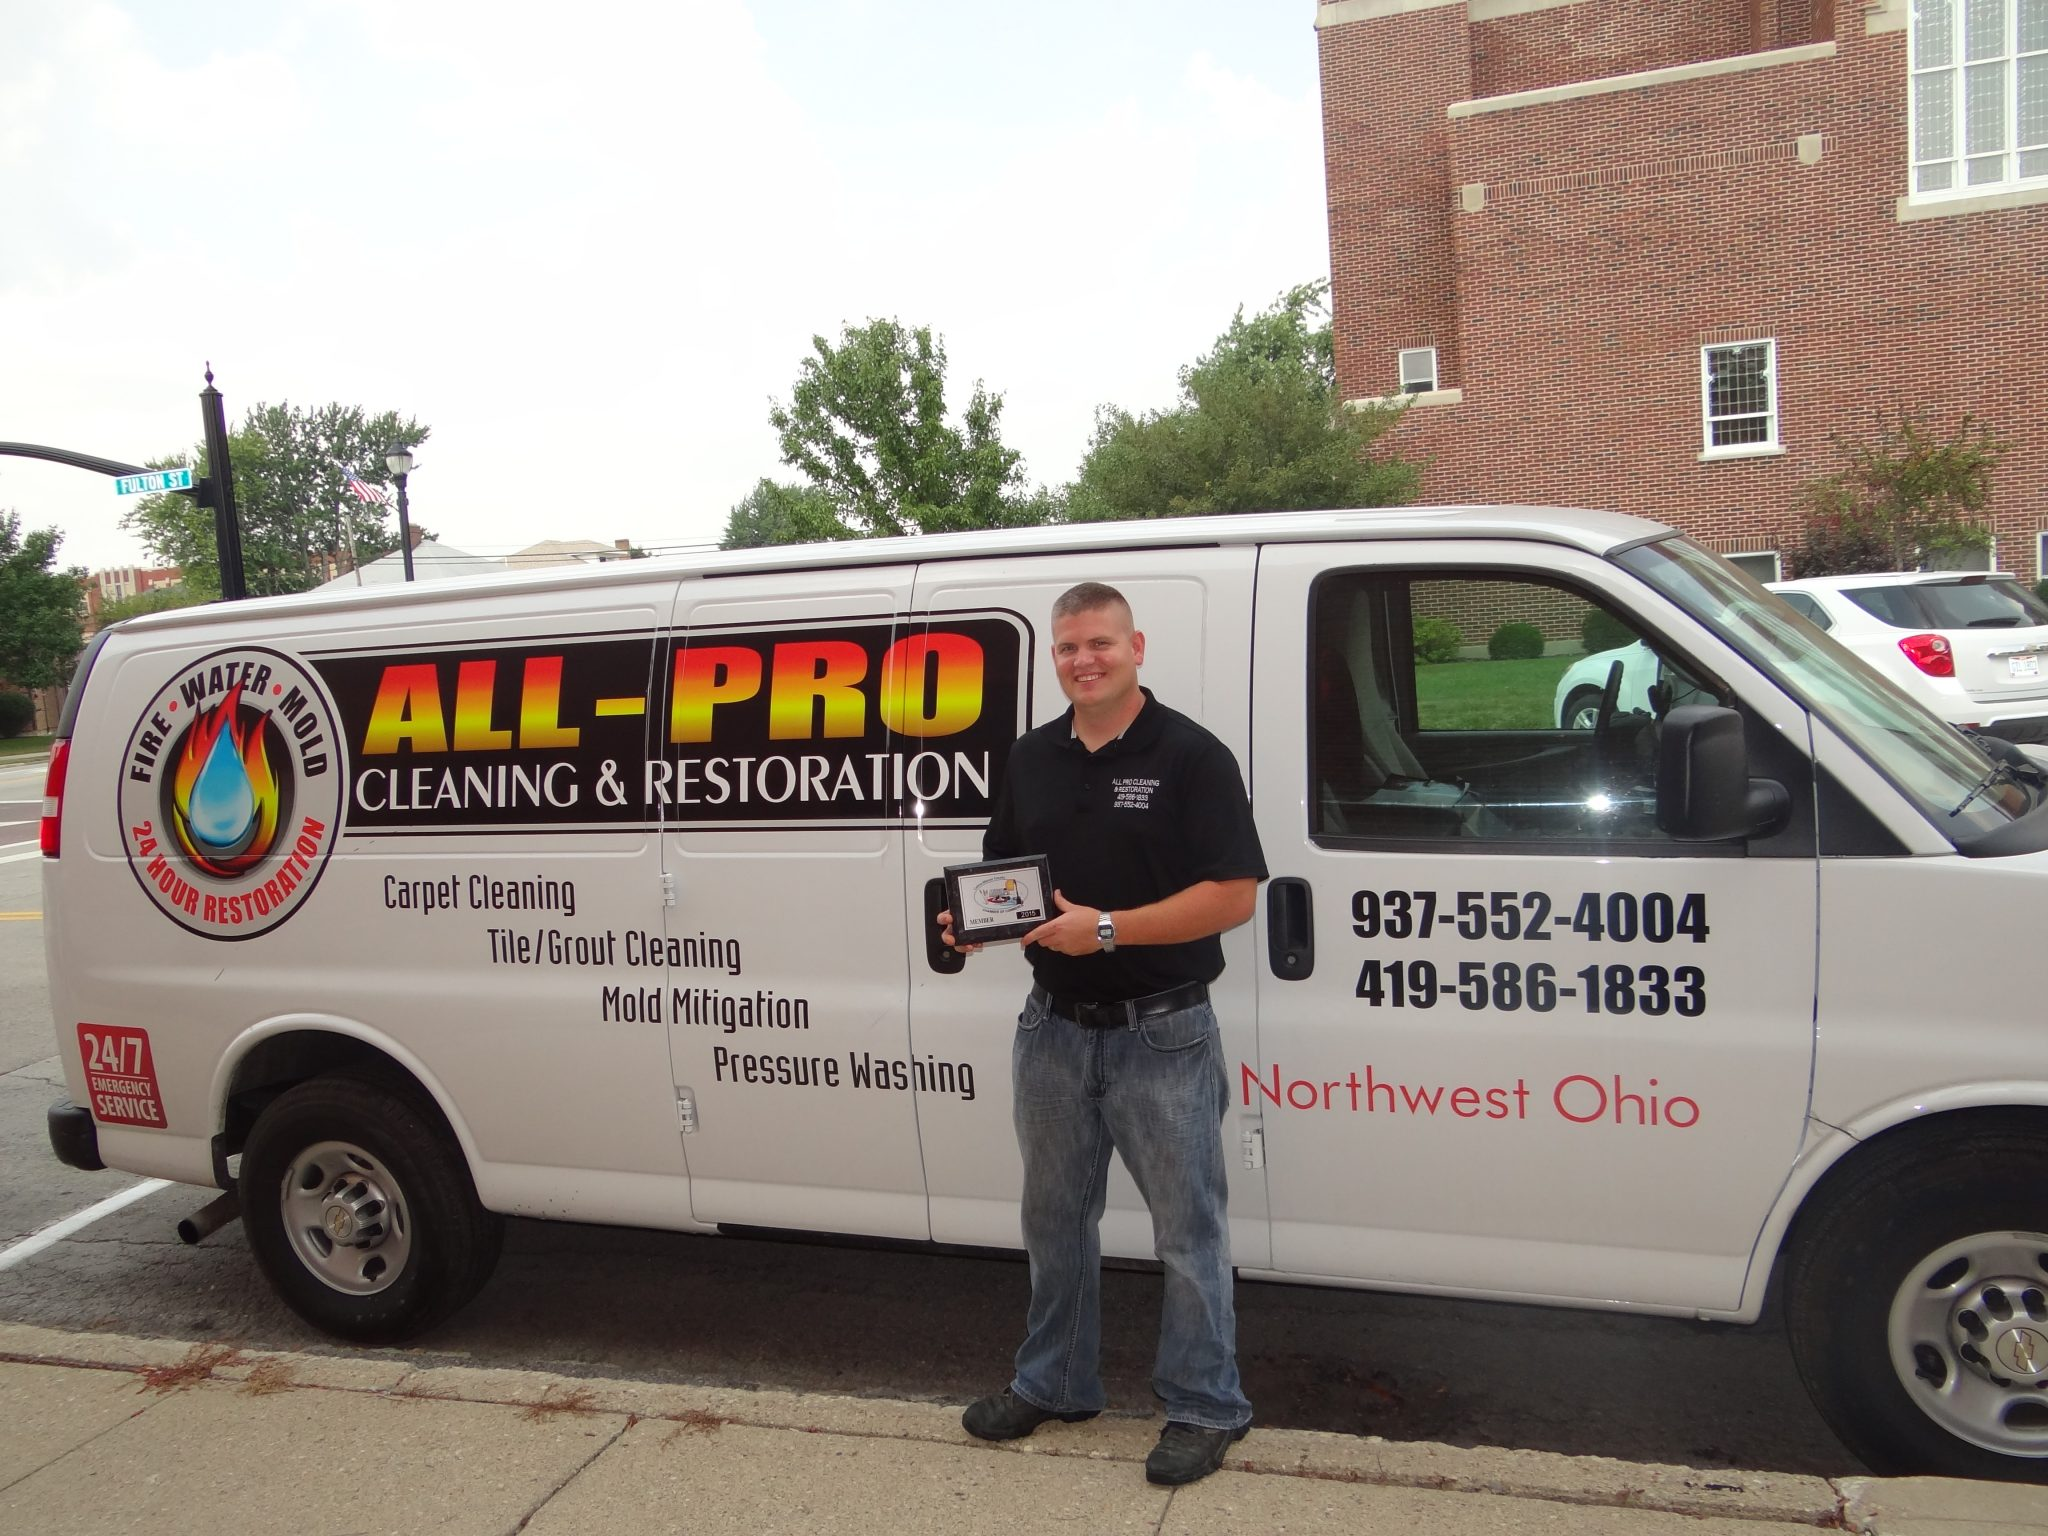 Welcome All Pro Cleaning & Restoration